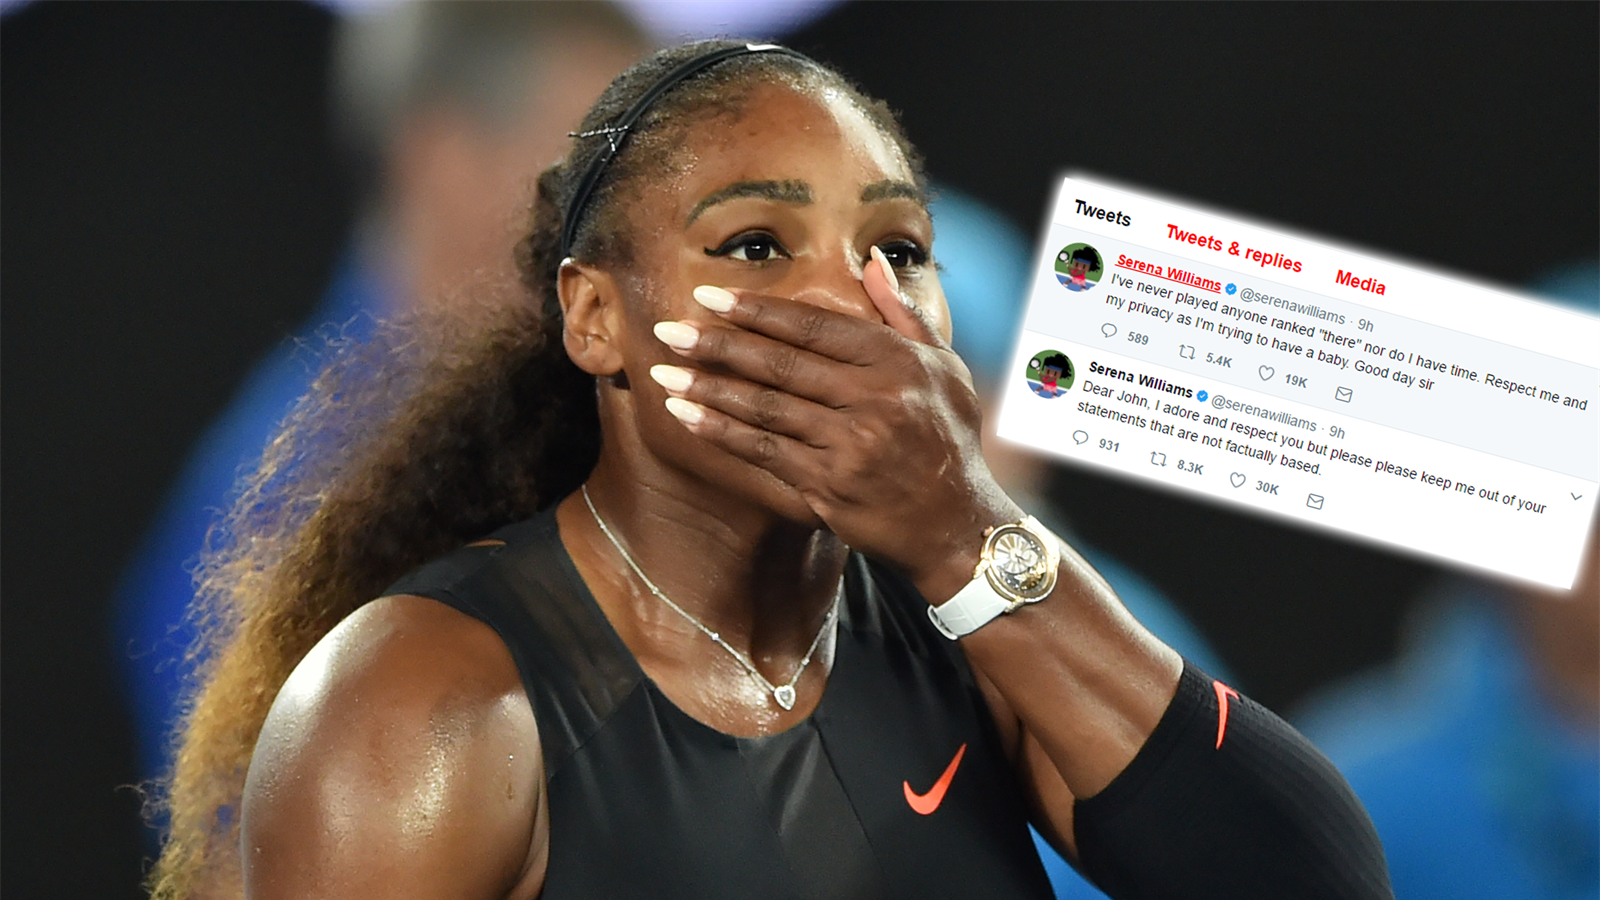 Respect me and my privacy Serena Williams hits back after John